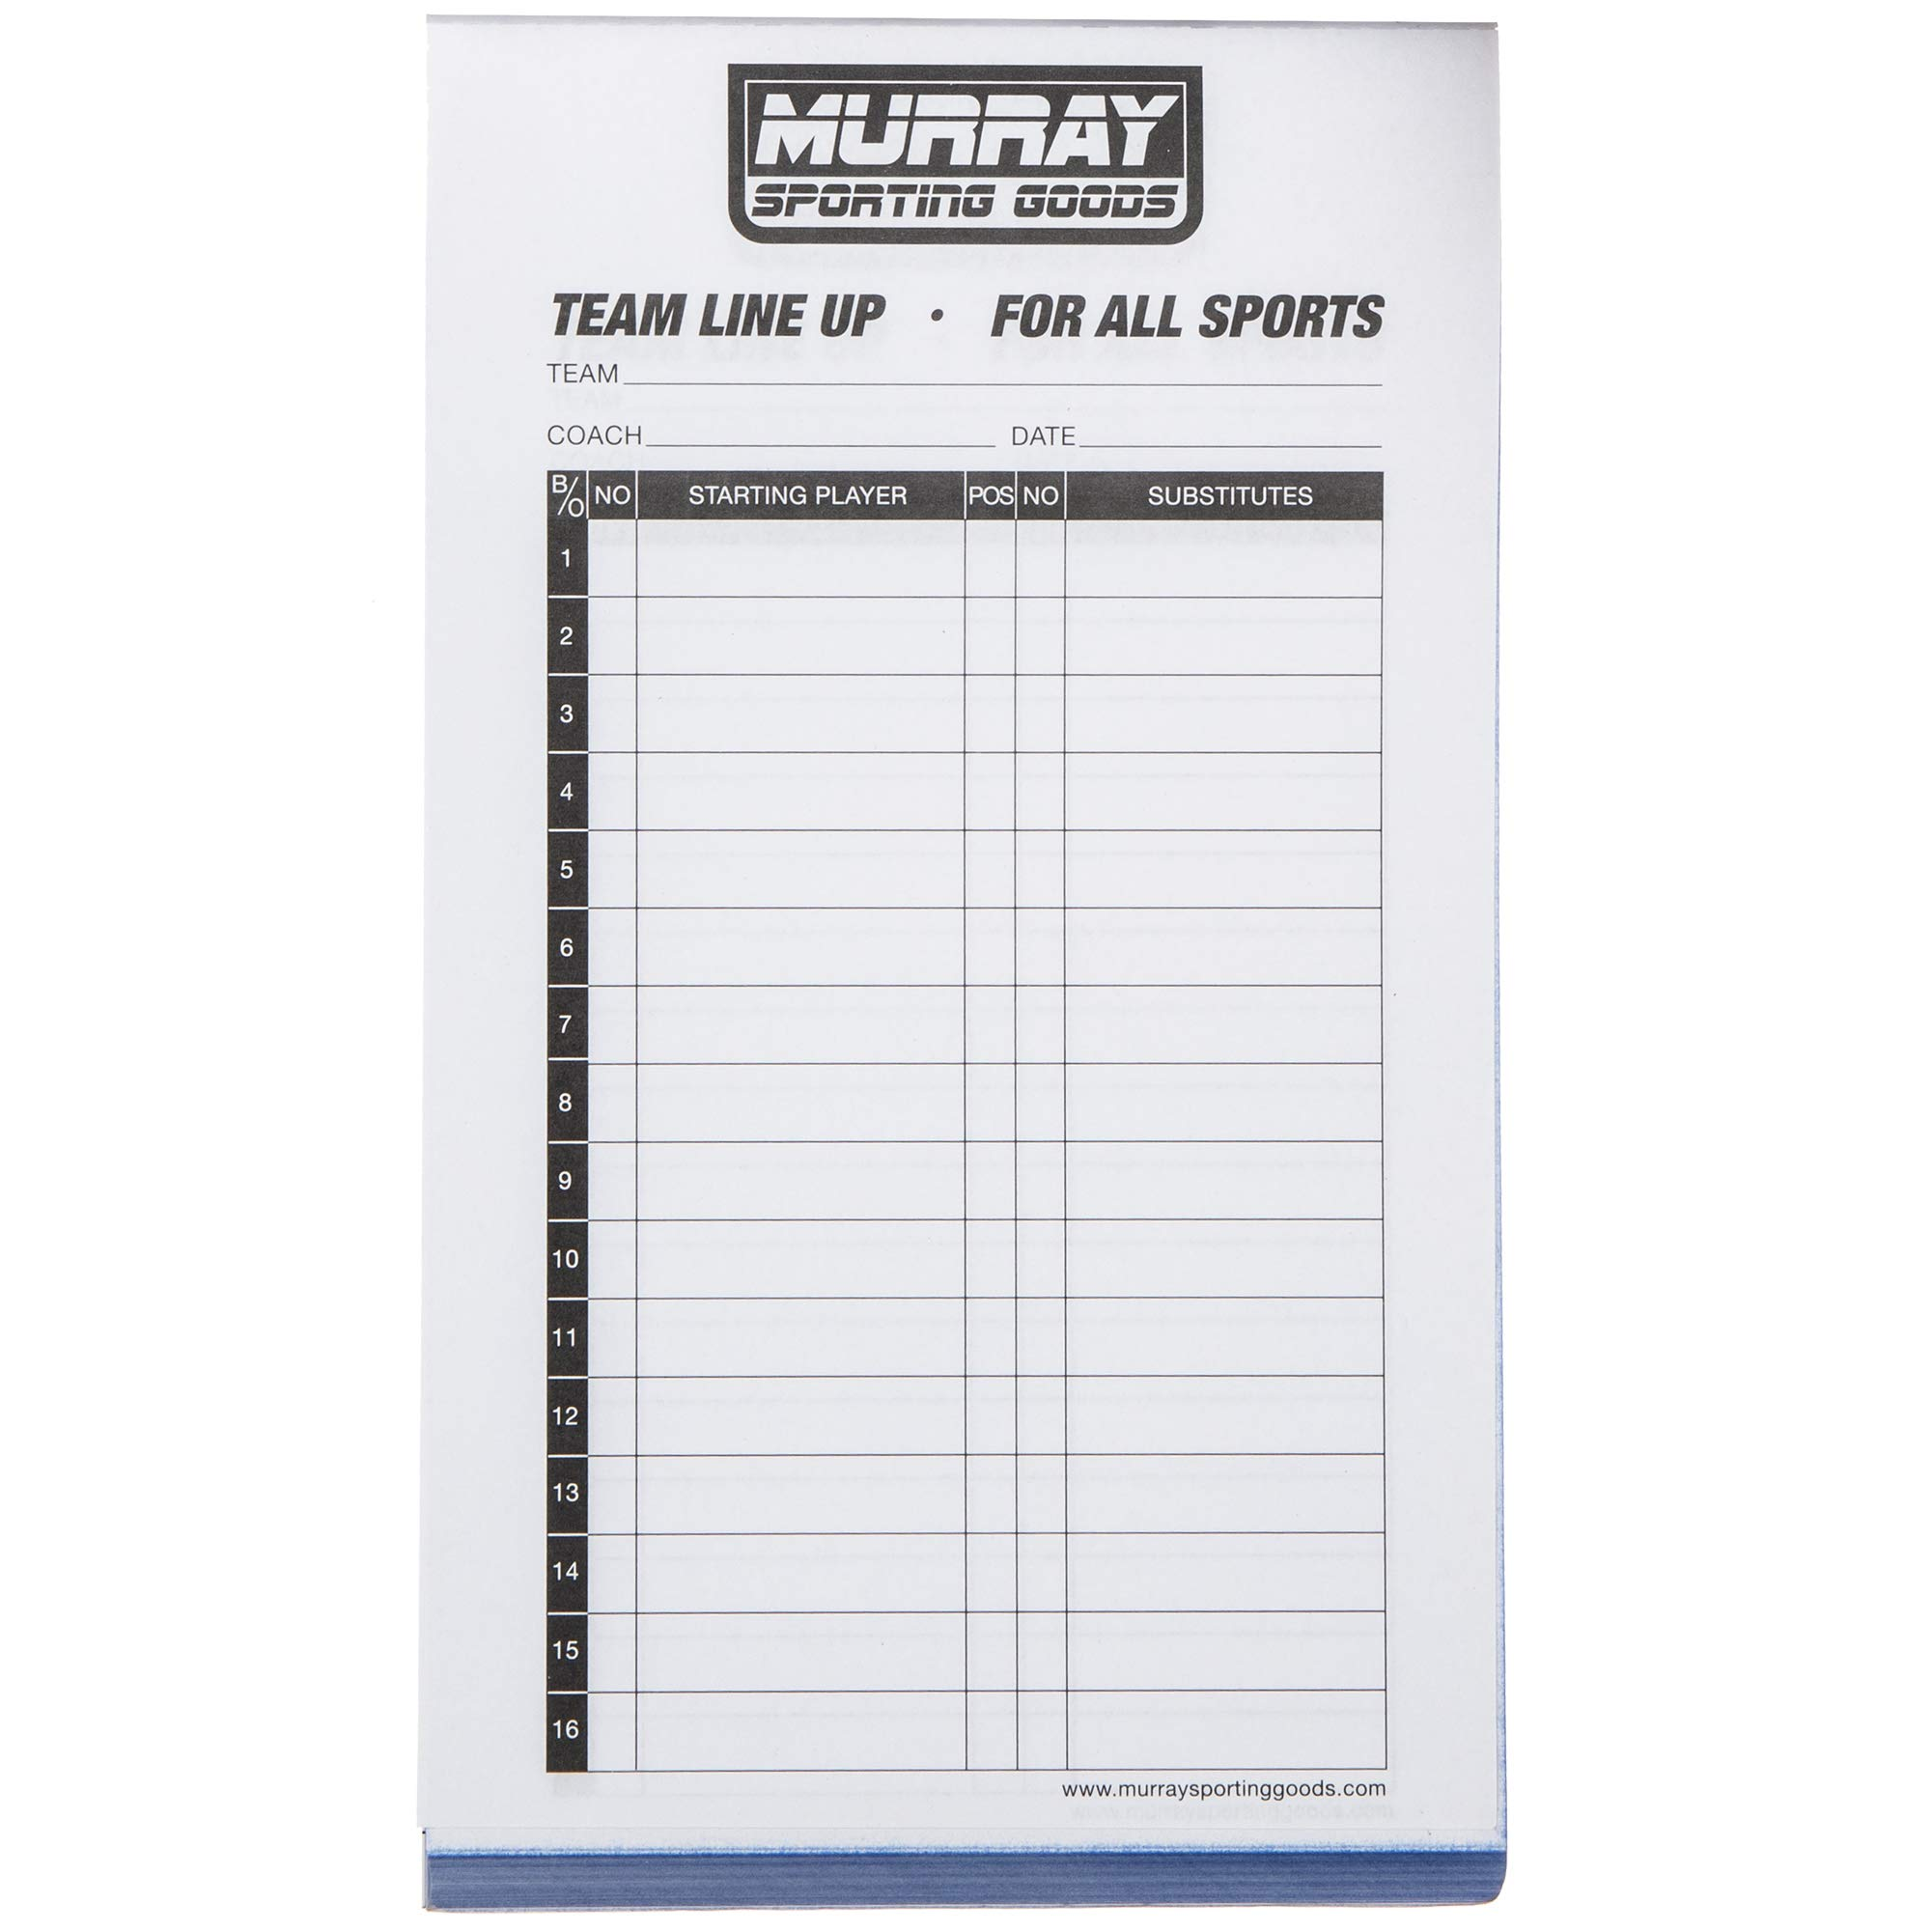 Murray Sporting Goods Baseball/Softball Lineup Cards - 22 Games with 22  Player Lineup In Baseball Lineup Card Template